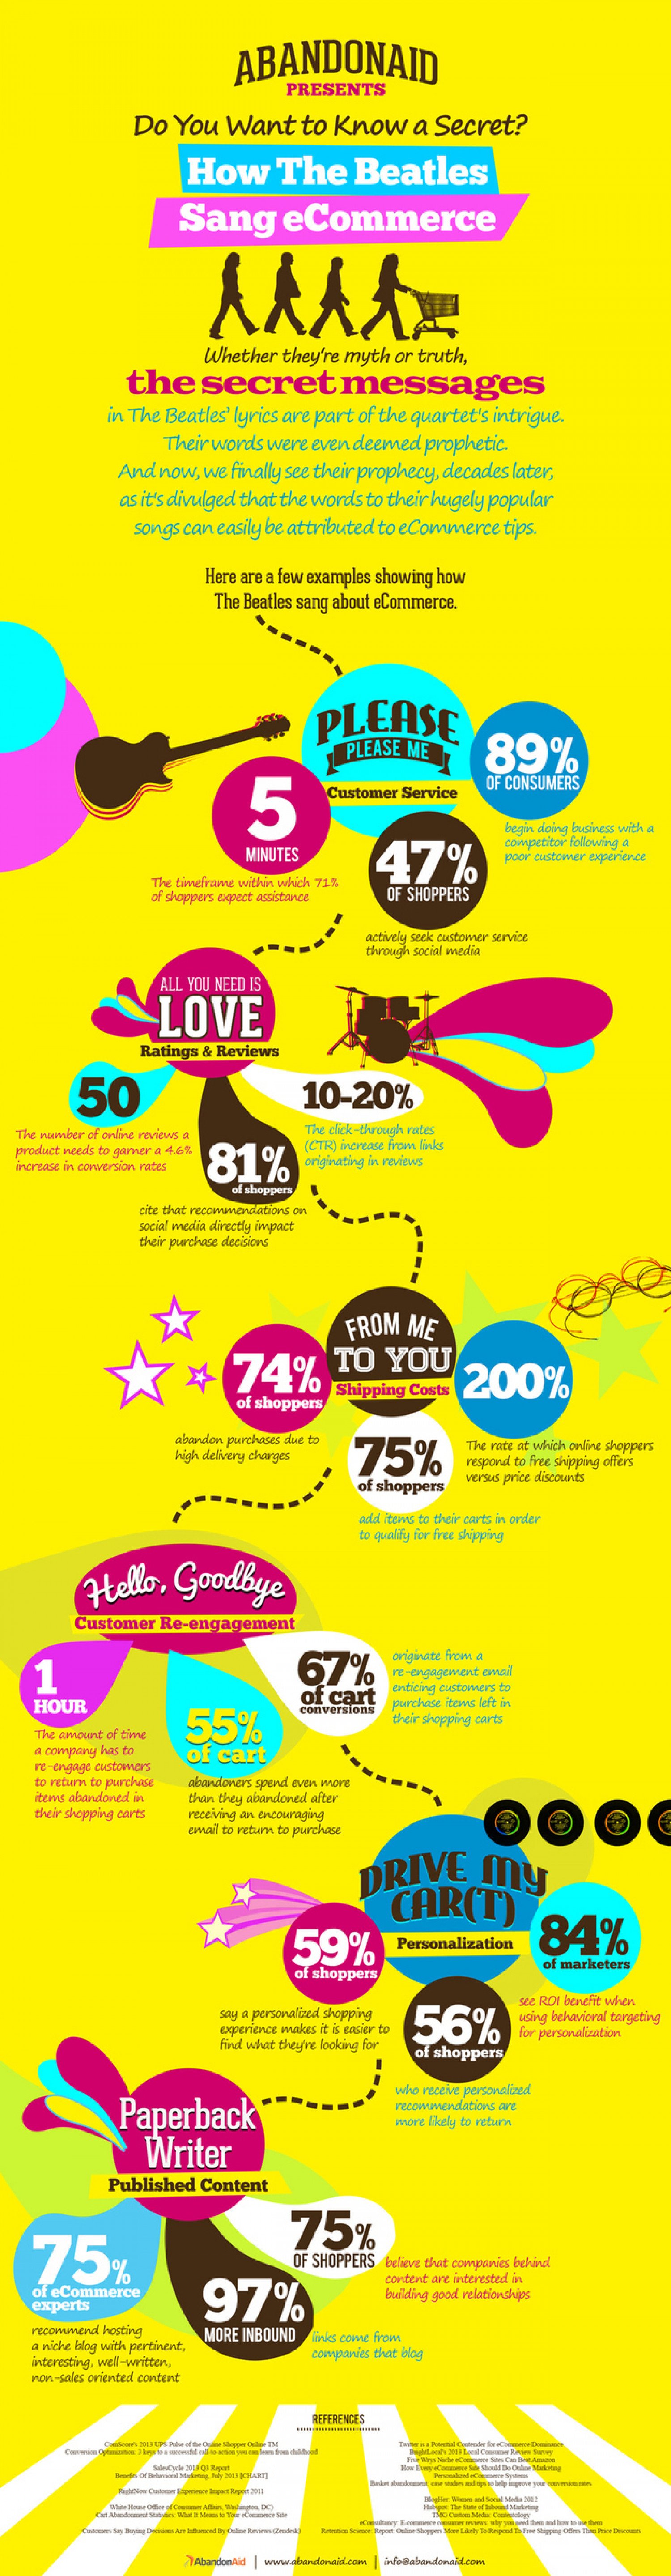 How The Beatles Sang eCommerce Infographic